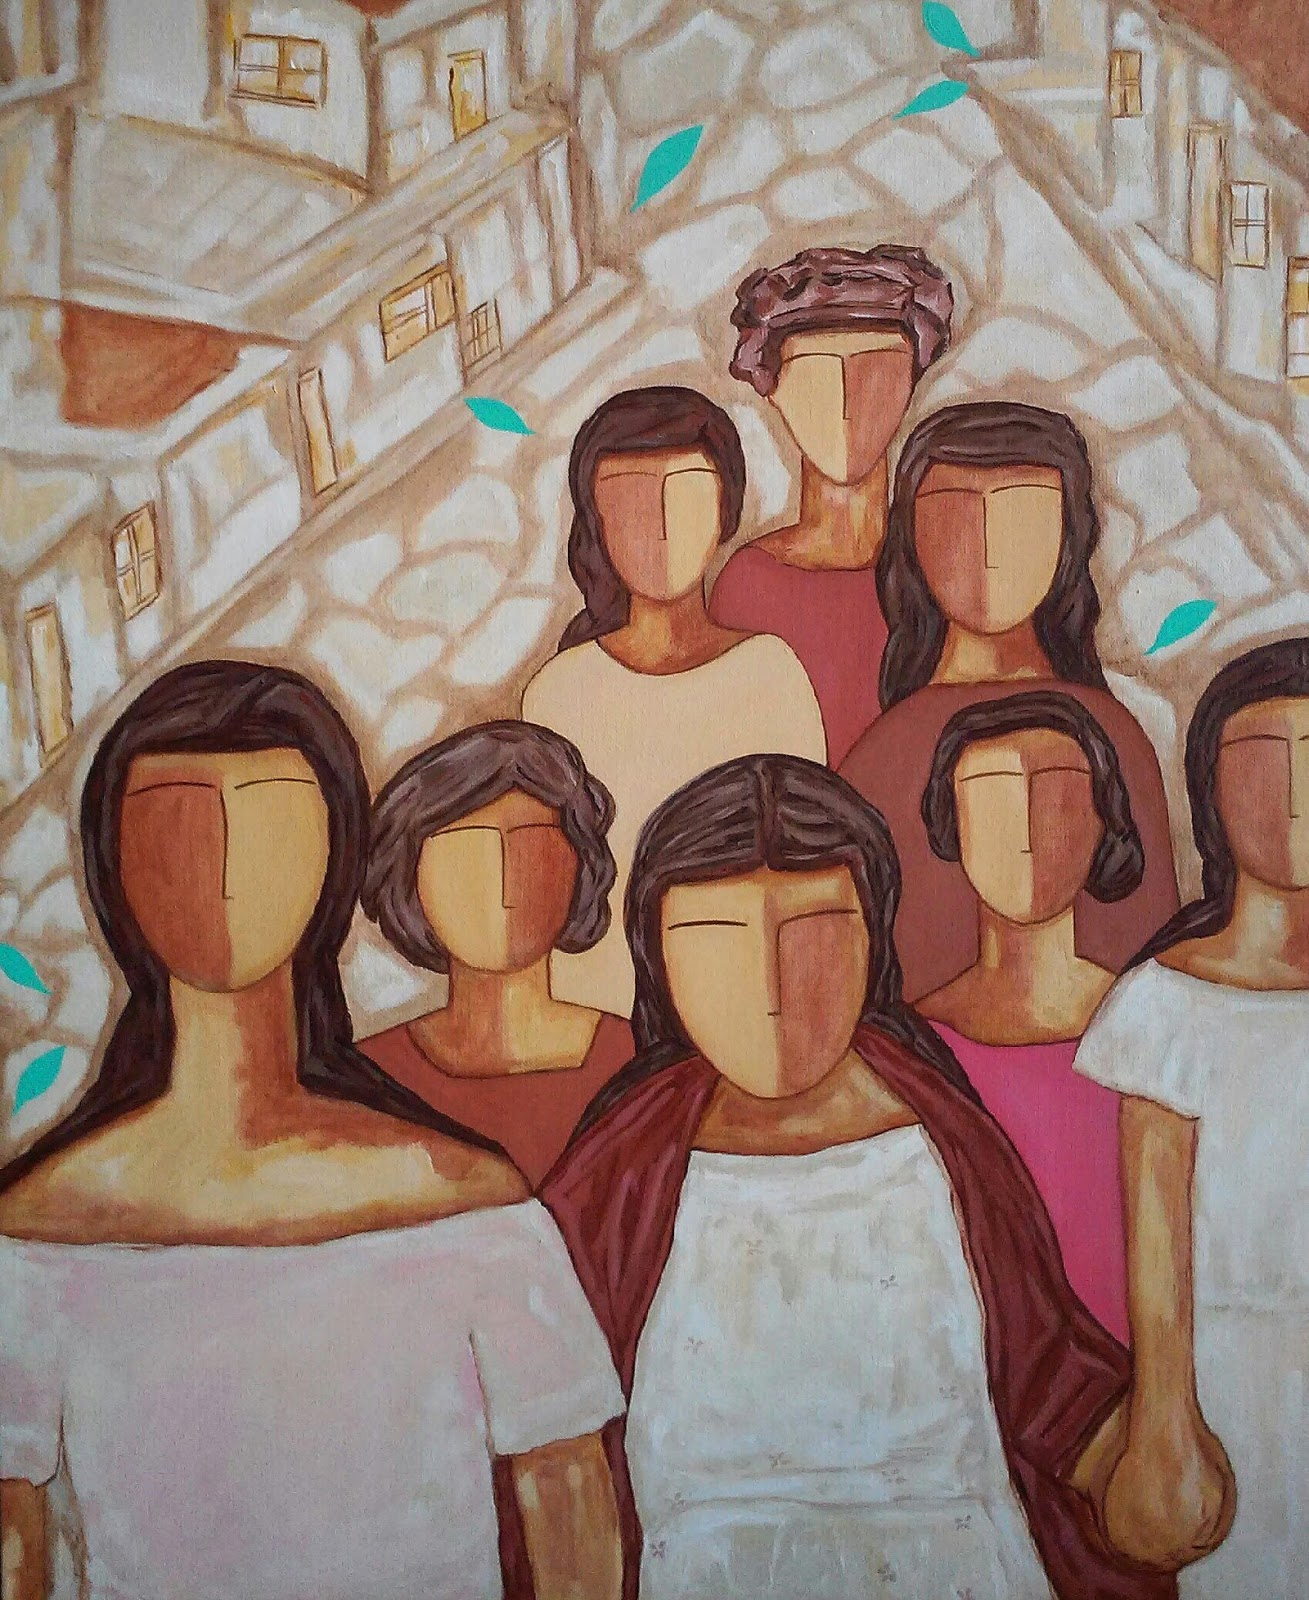 Acrylic Painting on Canvas with people walking by Pilar Vargas